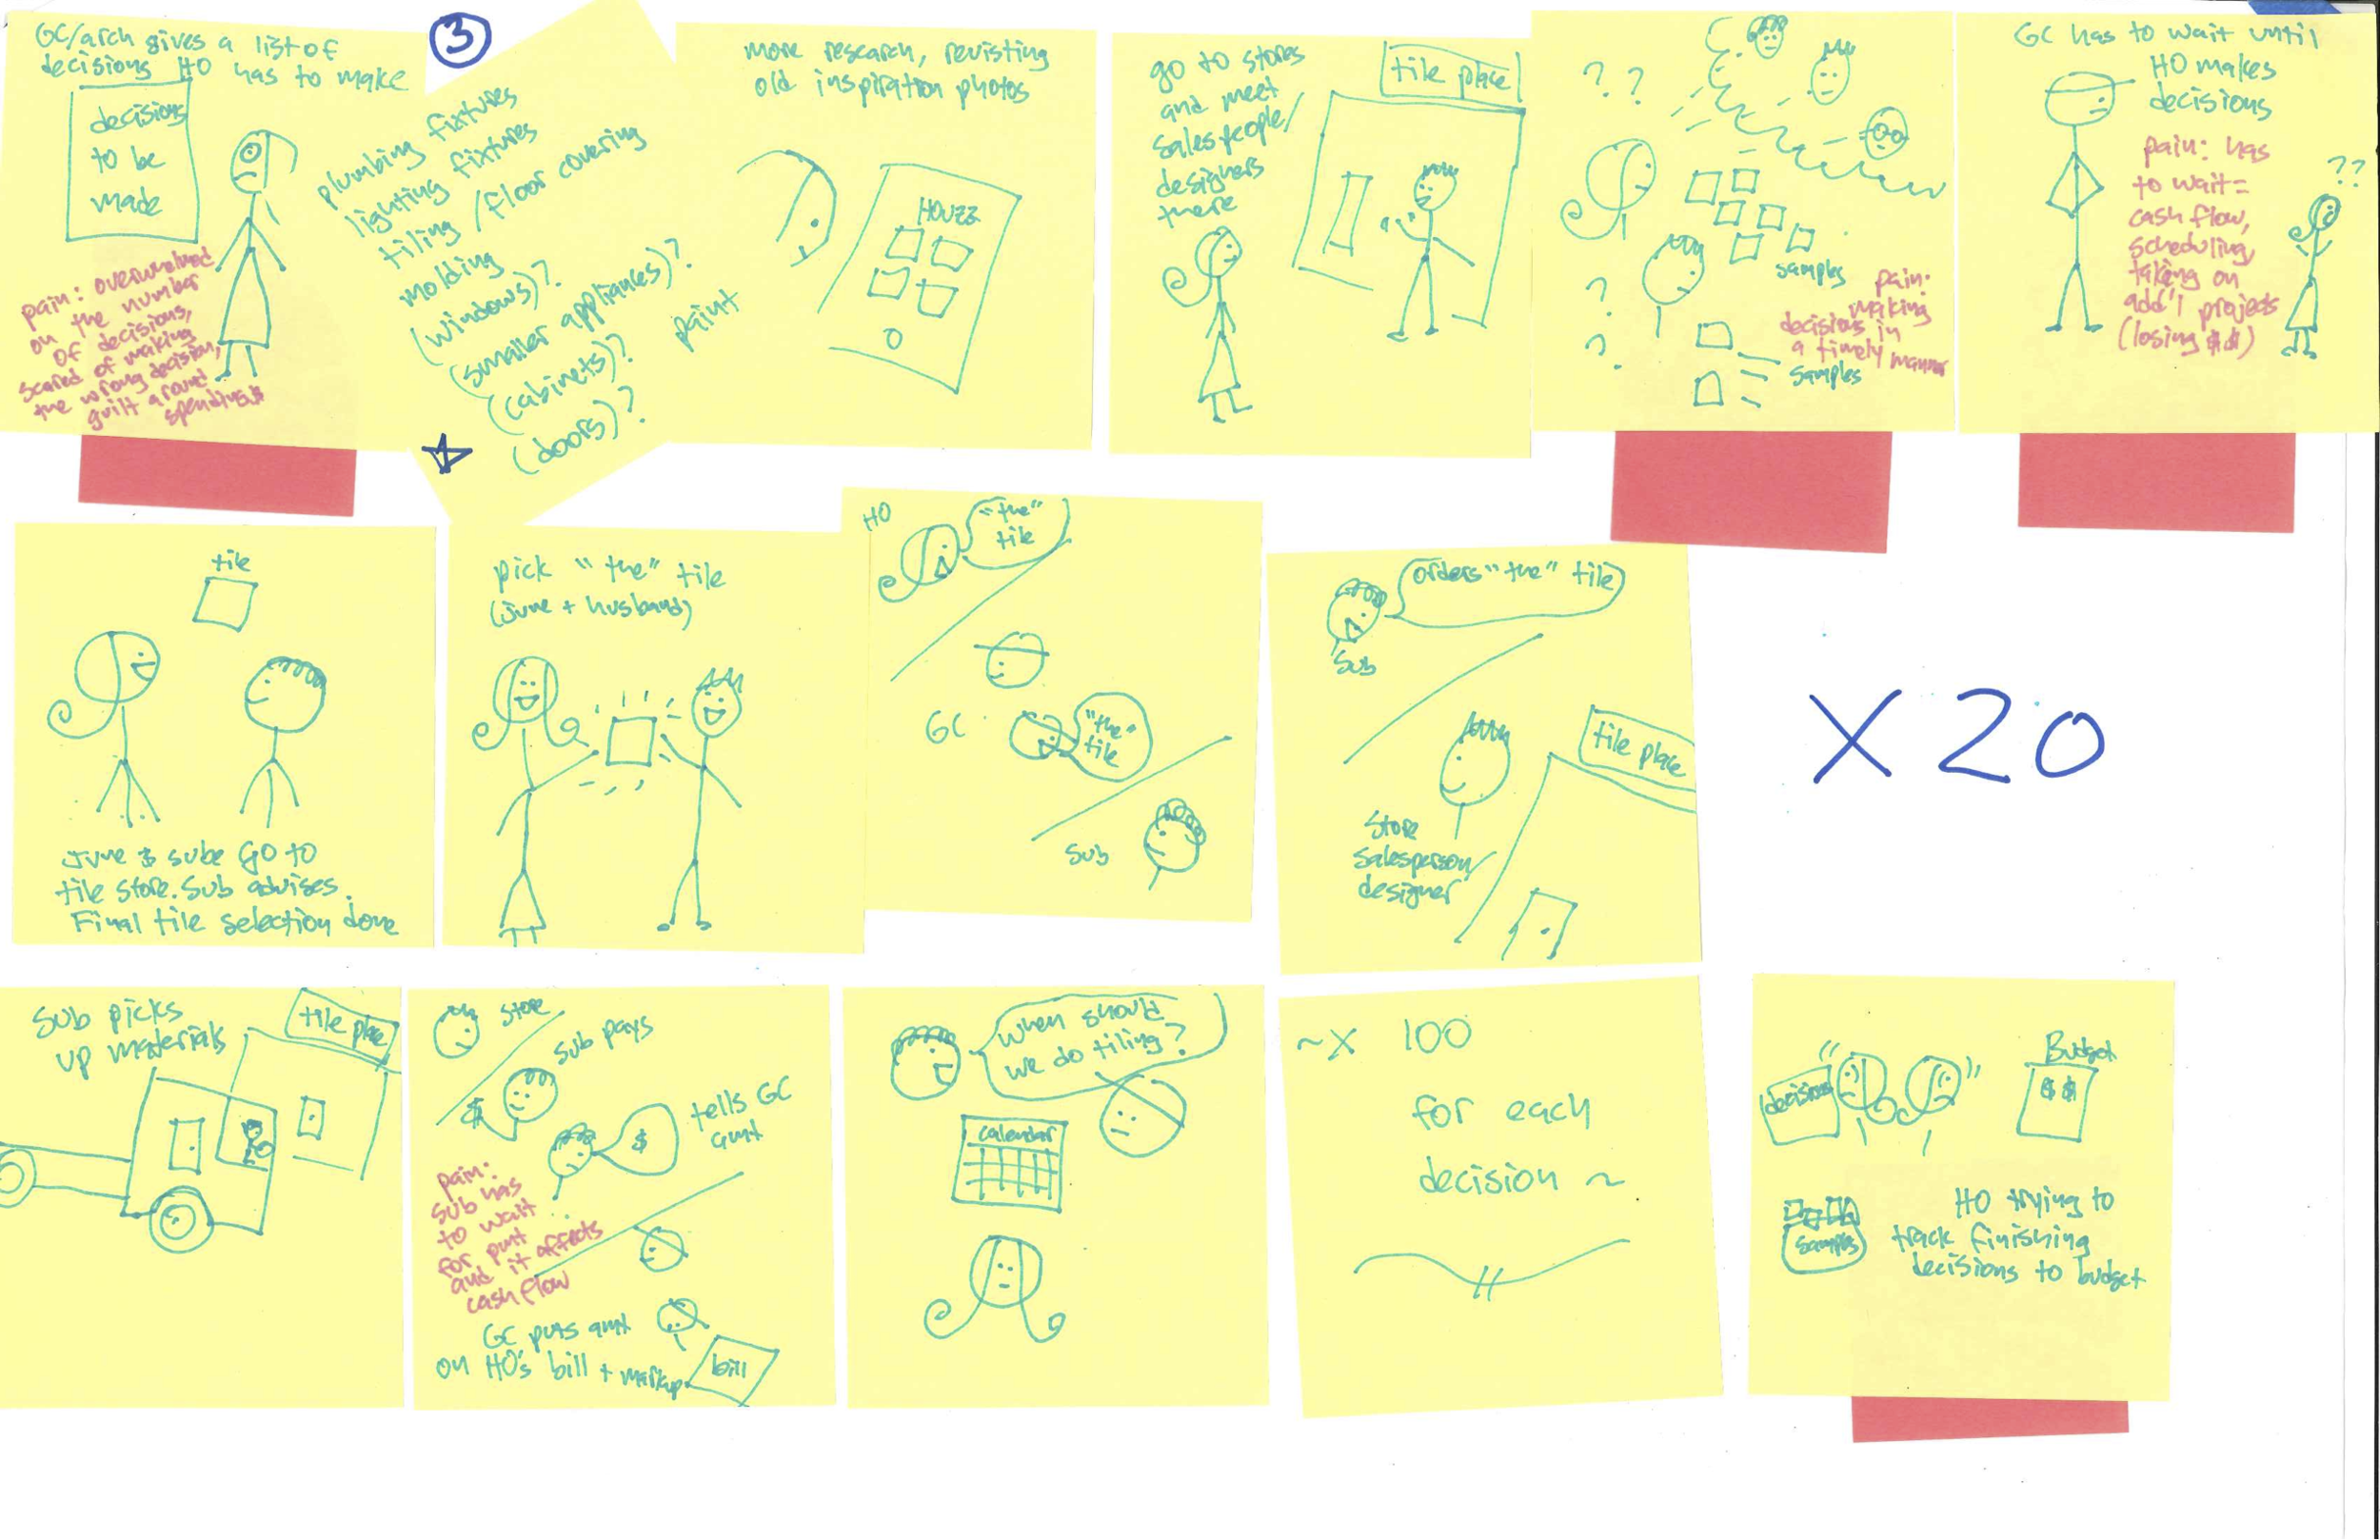 Storyboard of project workflow